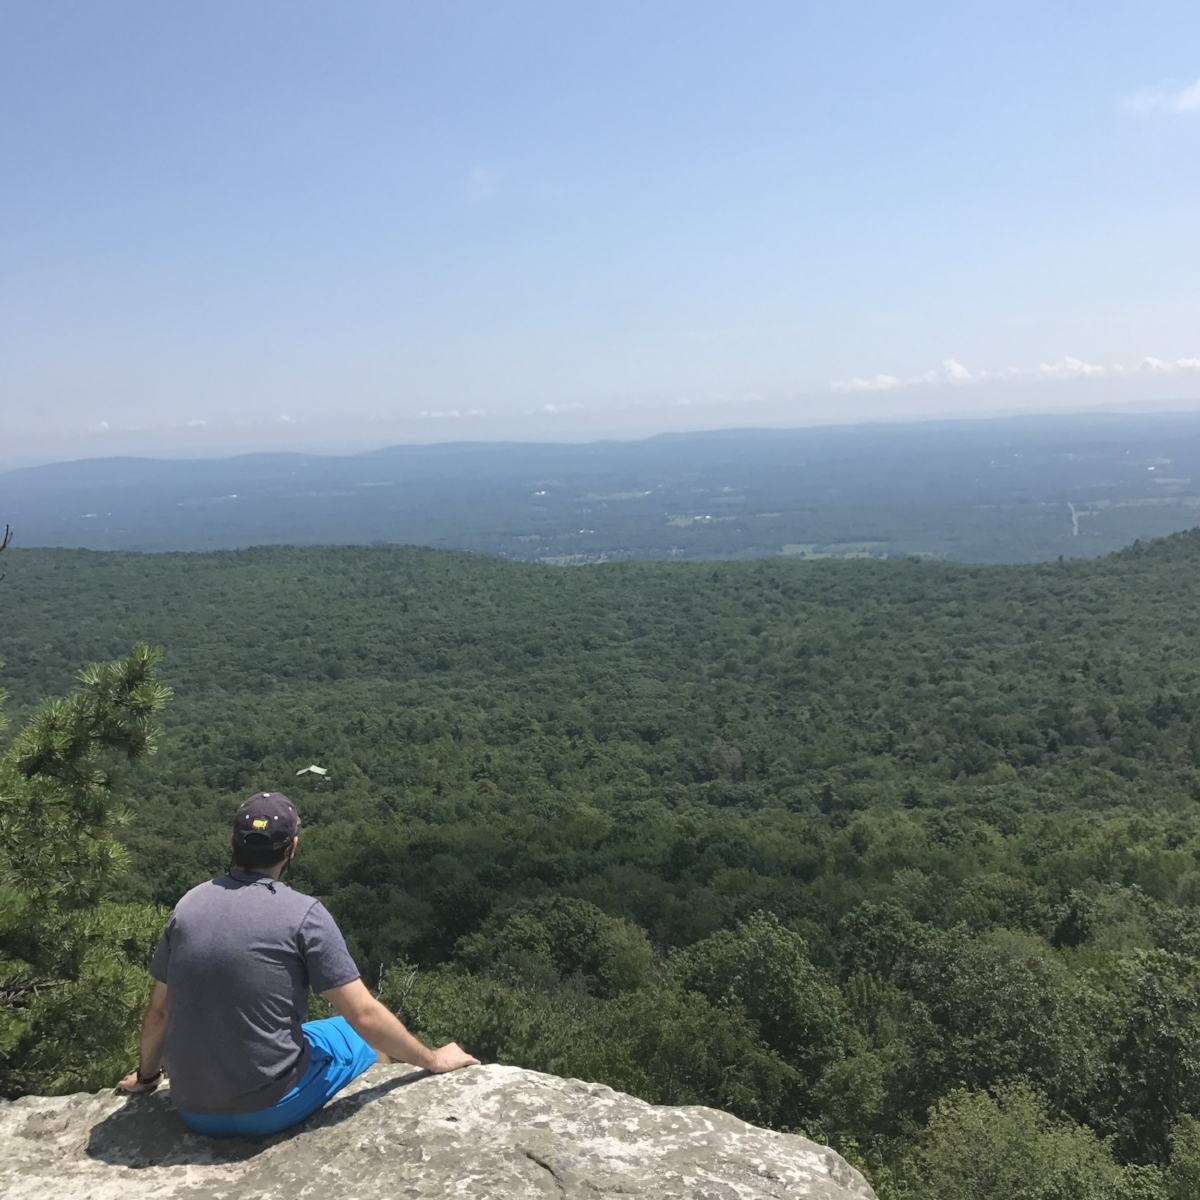 The Hudson Valley in New York is an ideal spot for outdoor adventures, with scenic parks and hiking along the Hudson River.